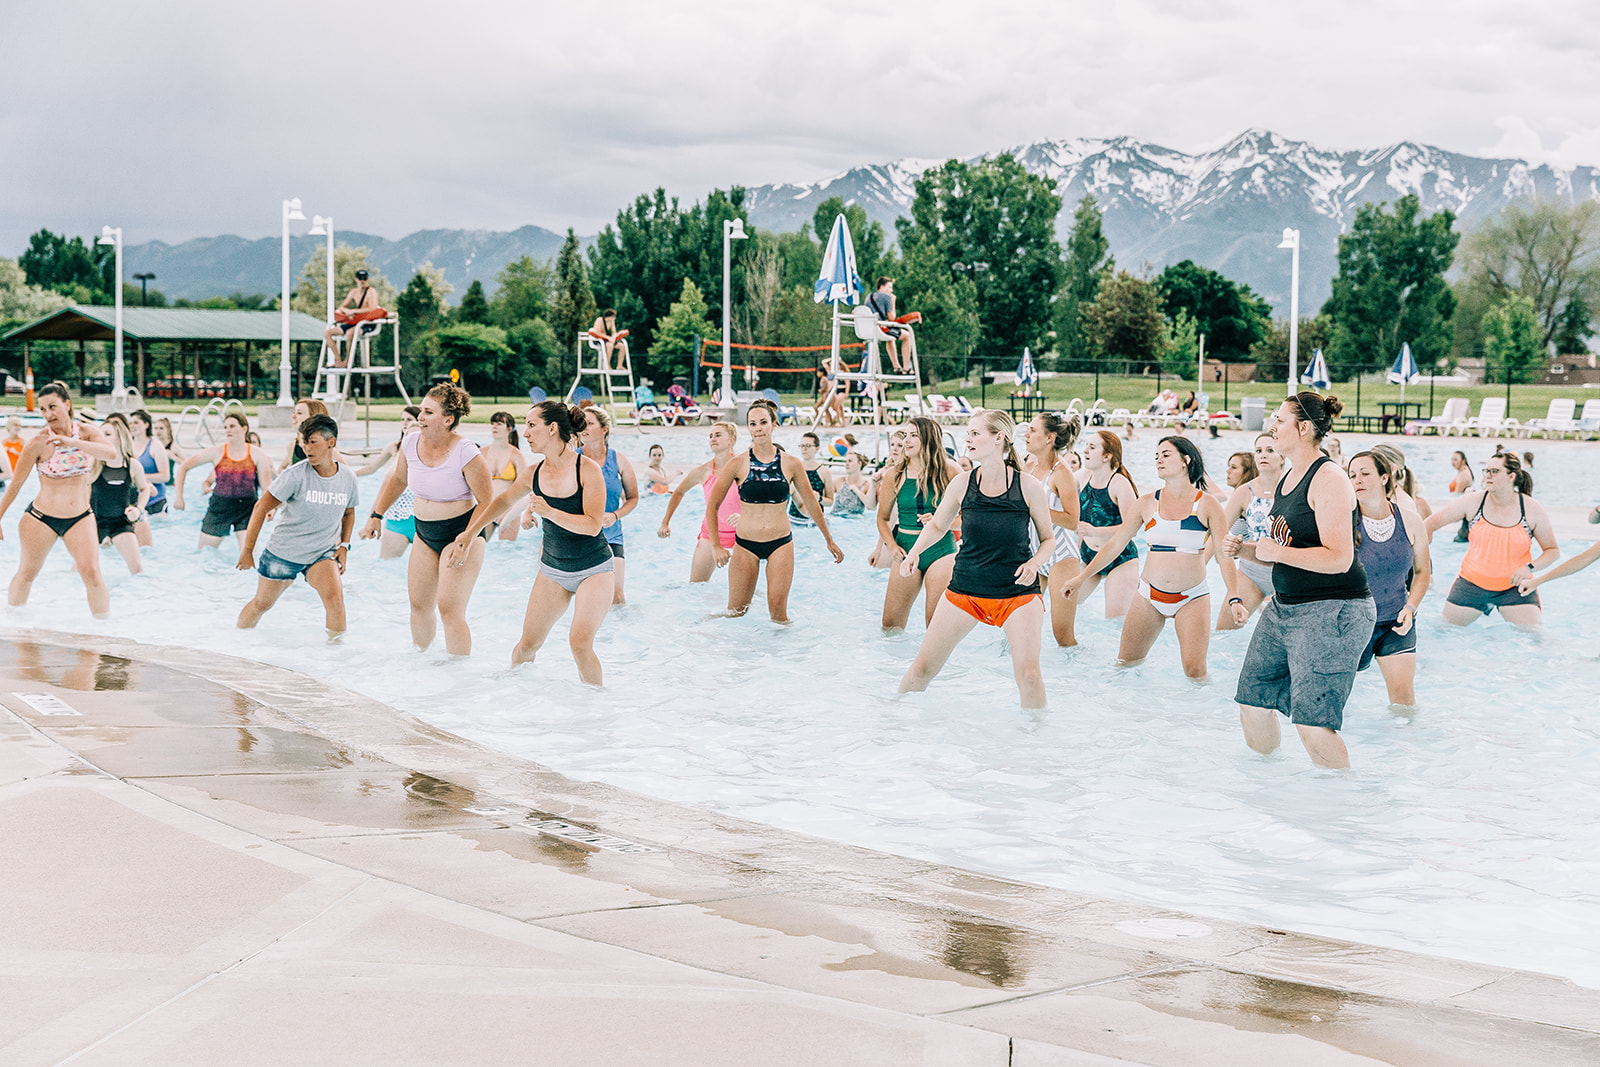 epic dance party high fit class swim instructor in the pool event pictures professional commercial event photos by bella alder photography cache valley utah photographer #bellaalderphoto #poolparty #professionalevent #eventinspo #poolpartyinspo #commercialevent #commercialphotography